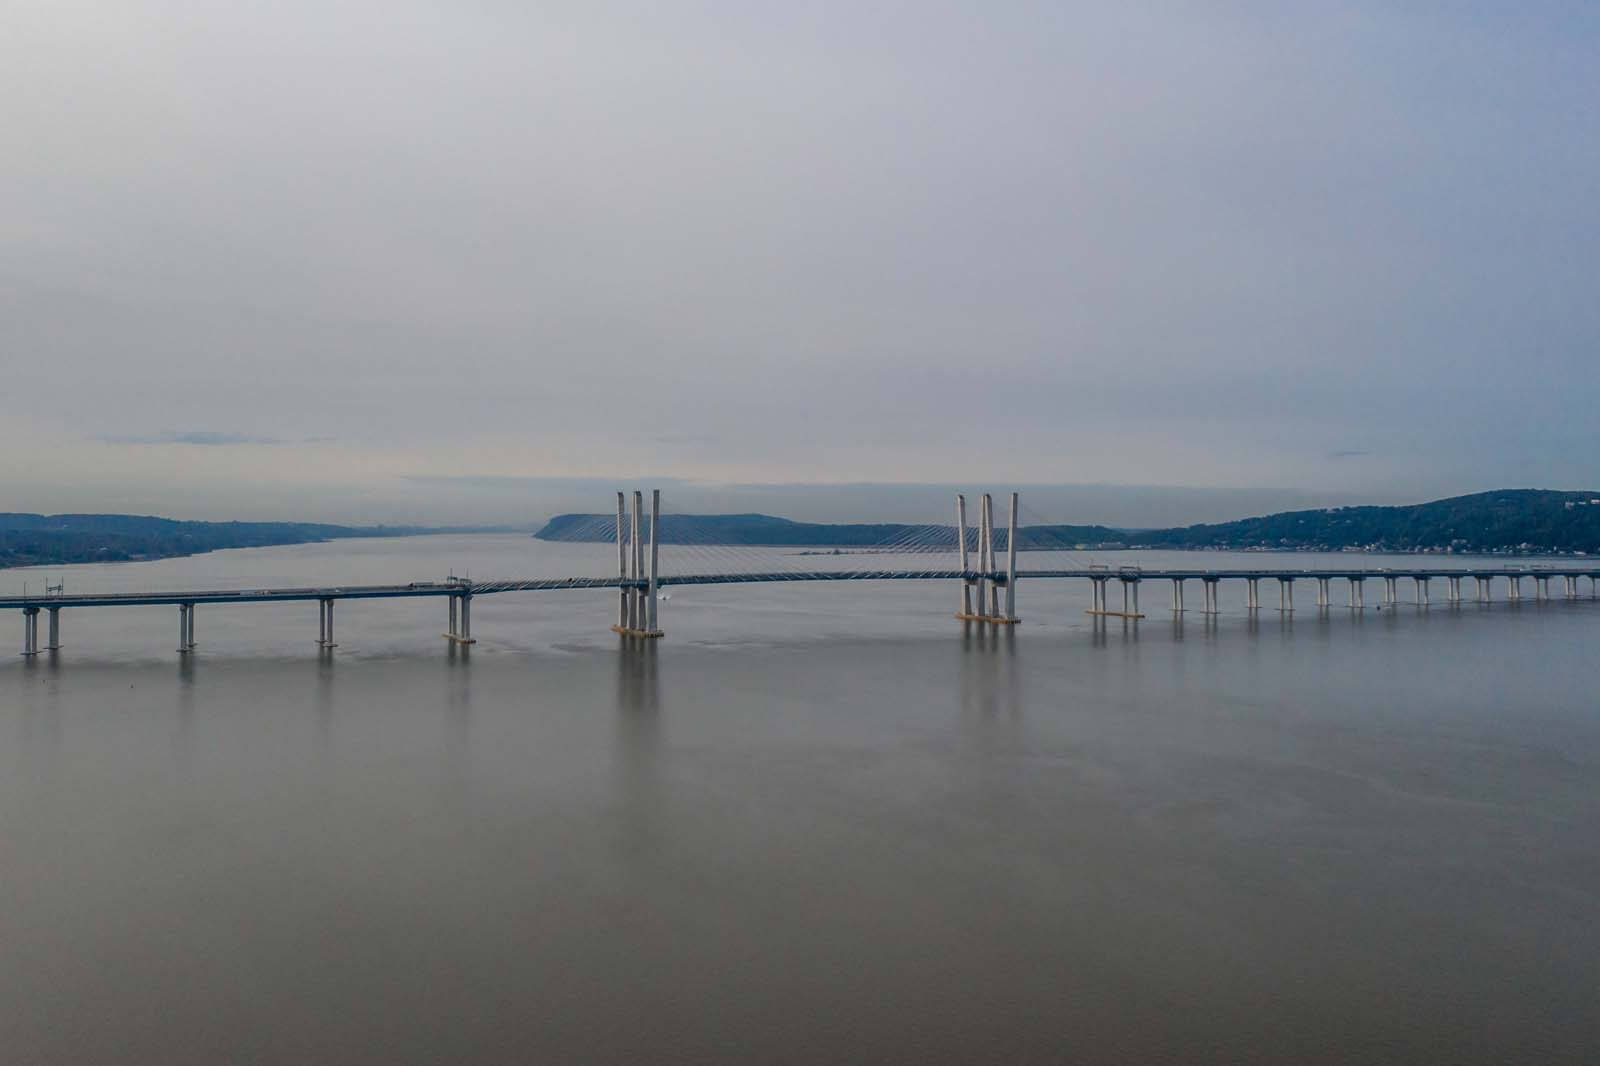 Governor Mario Cuomo Bridge over the Hudson River in Tarrytown NY